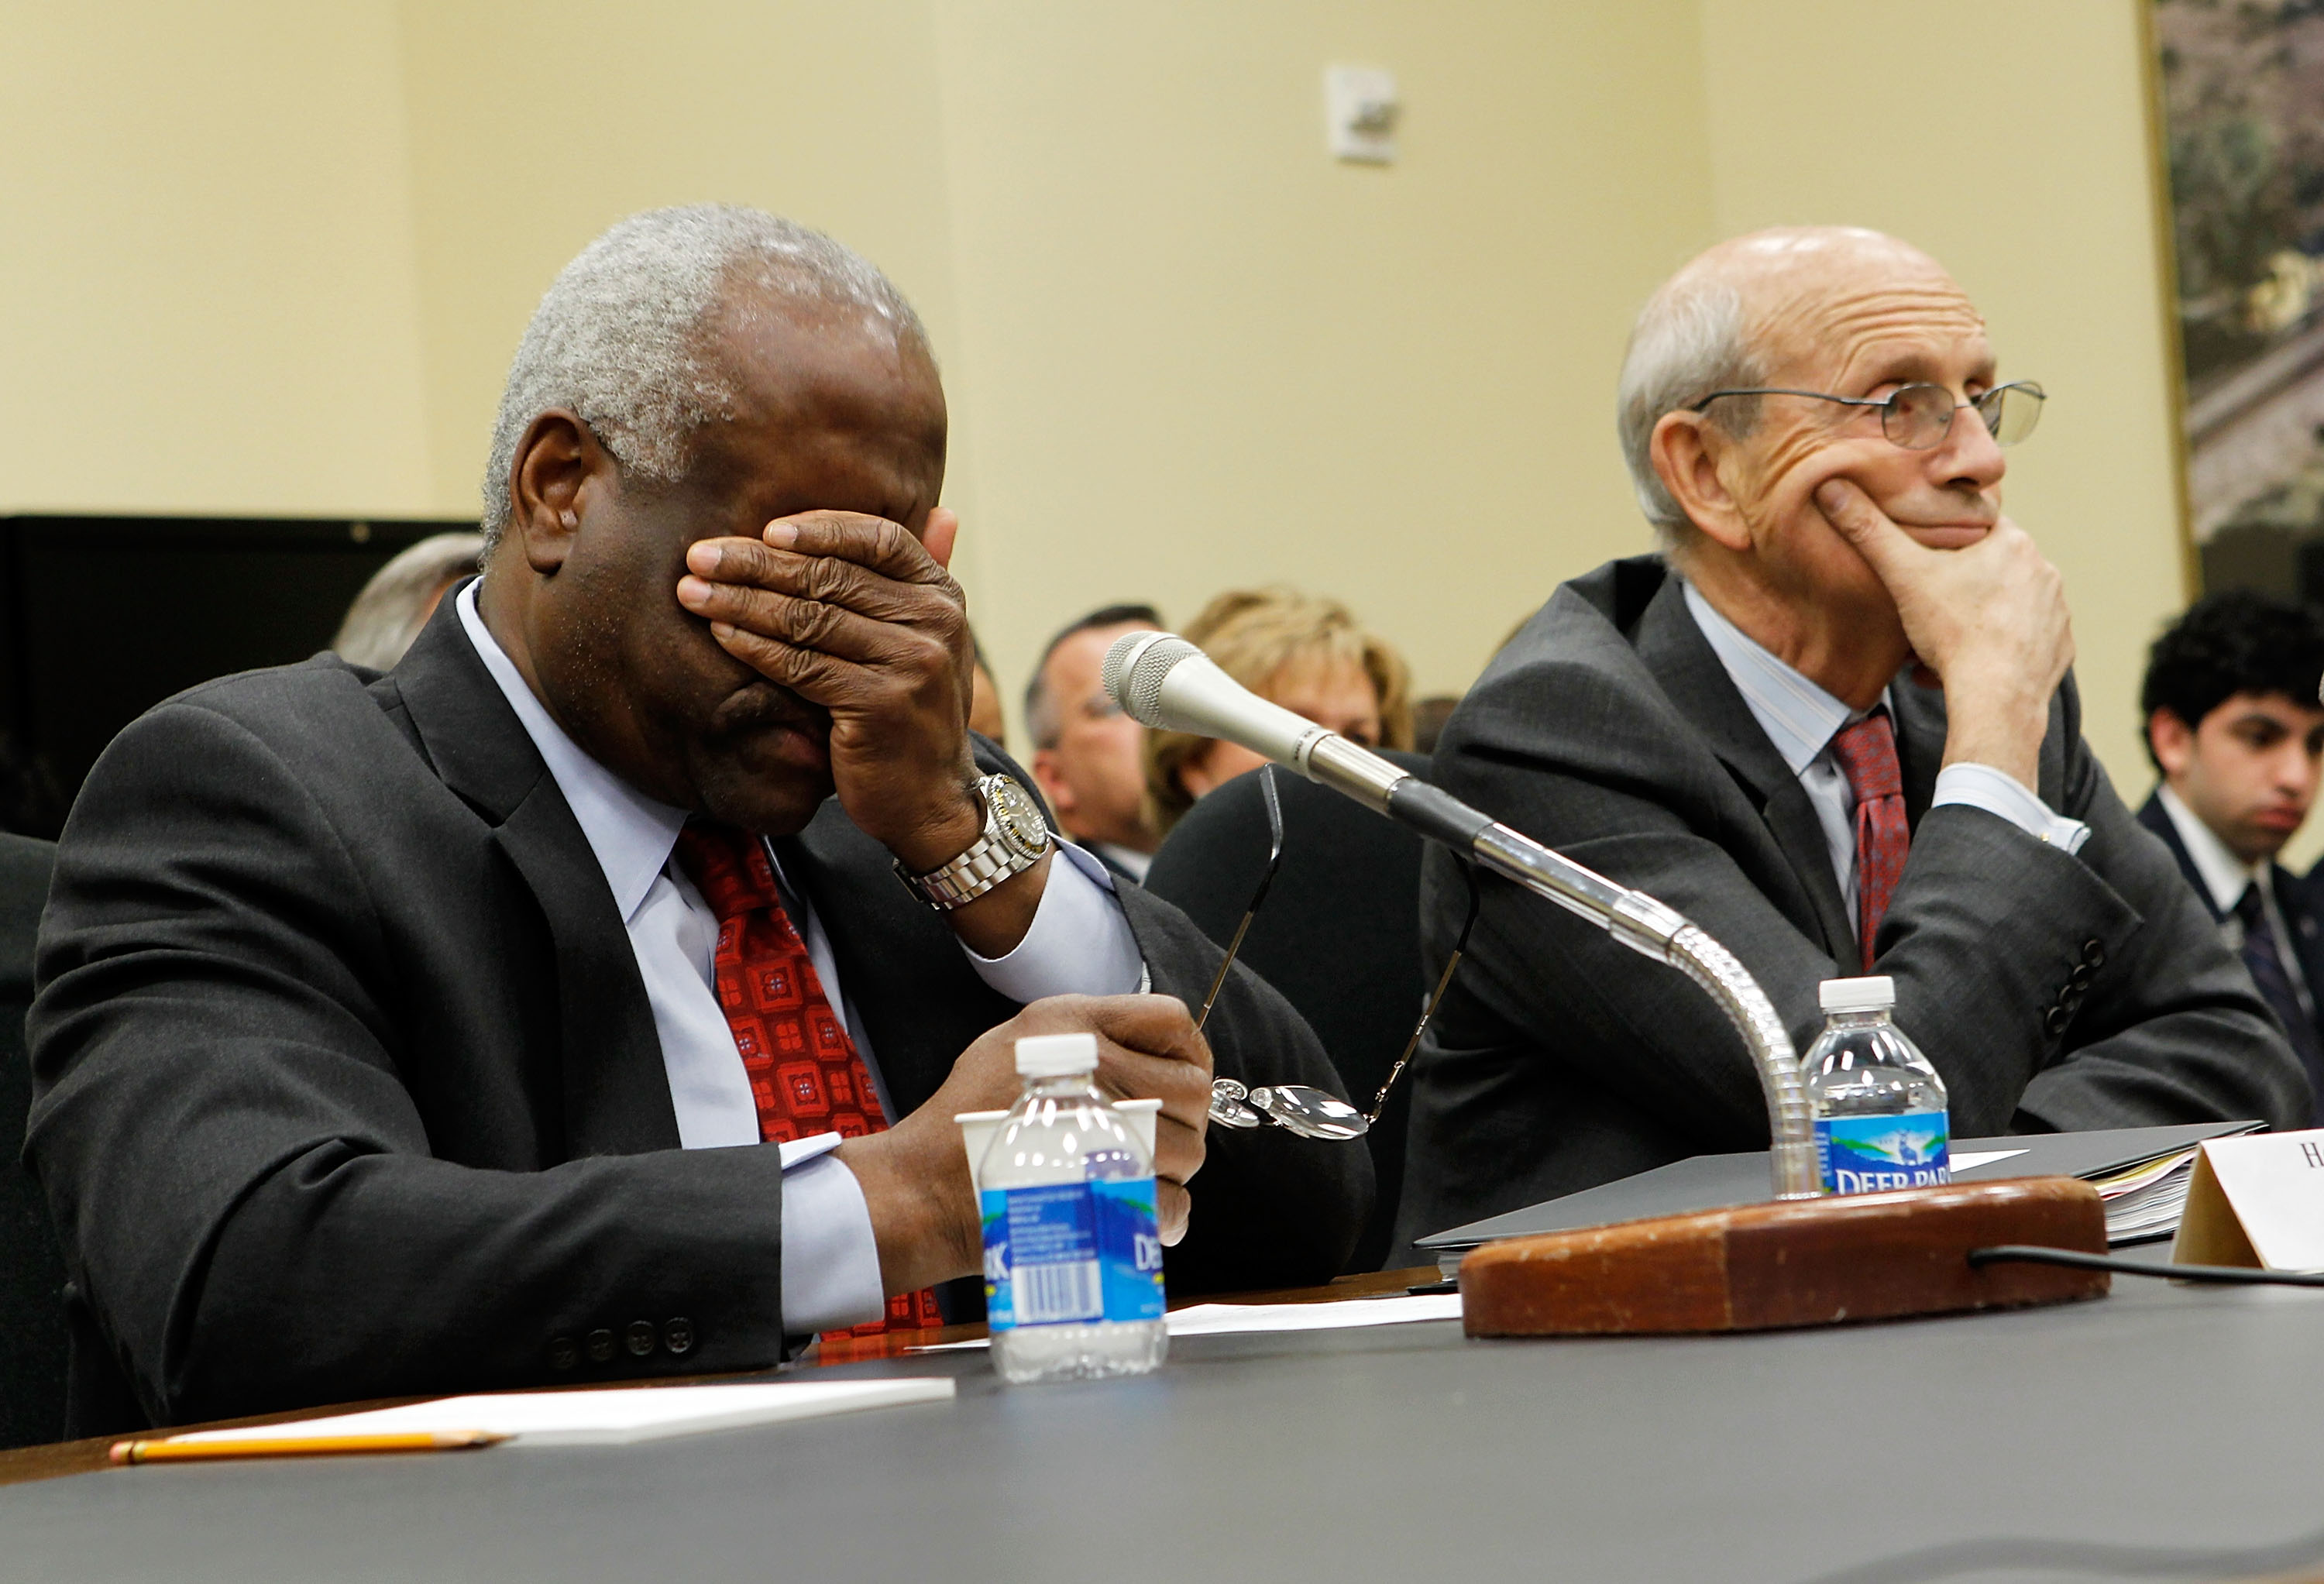 Justices Clarence Thomas (L) and Stephen Breyer (R) testify during a hearing before the House Appropriations Committee on April 15, 2010. (Alex Wong/Getty Images)